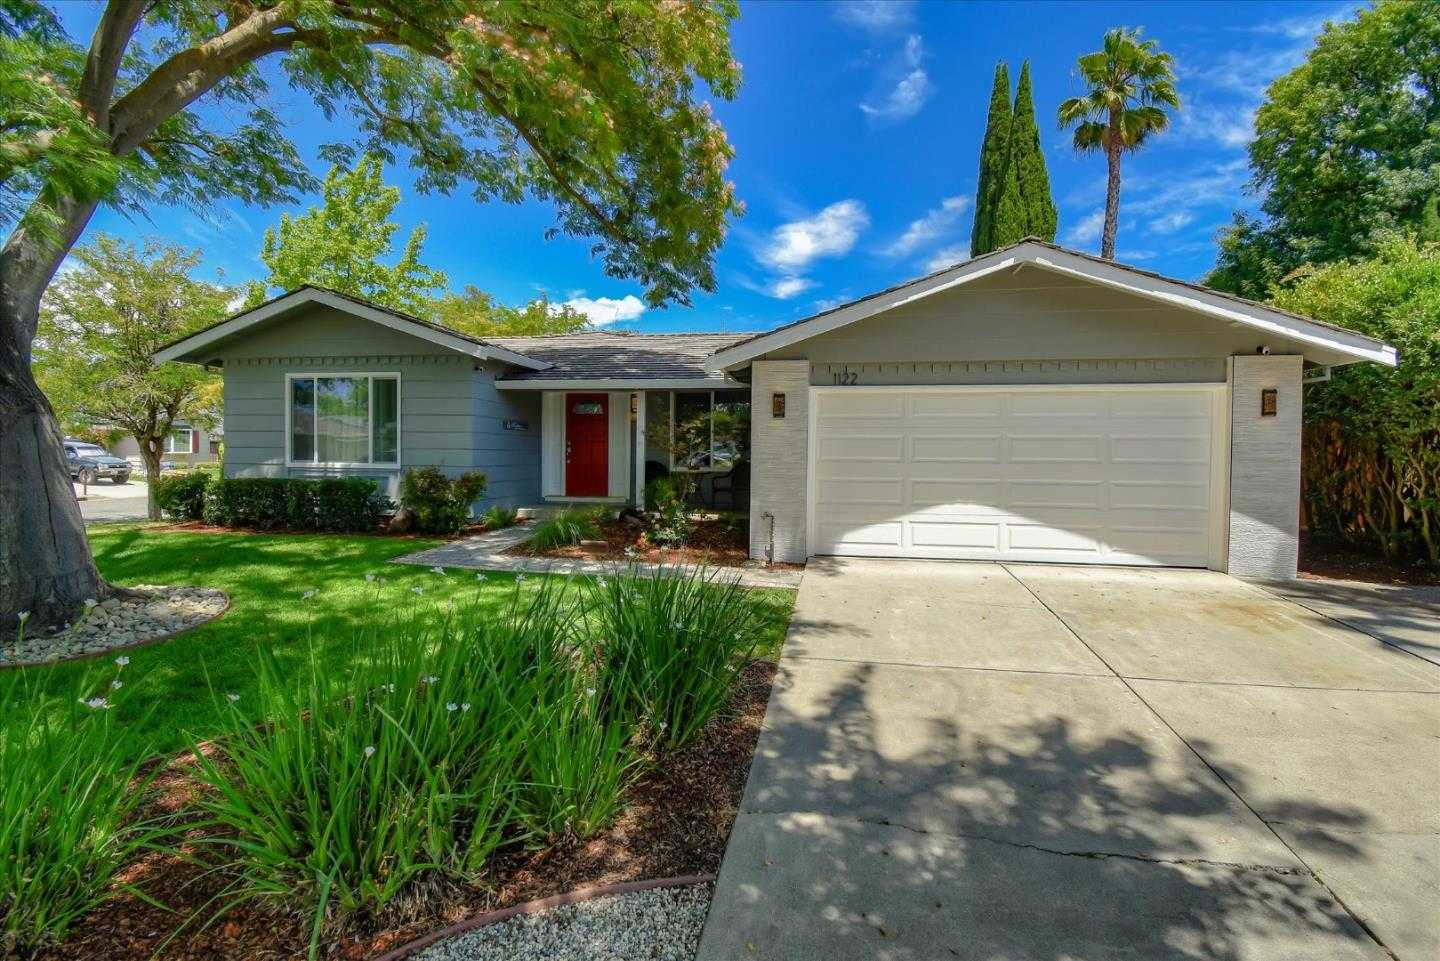 $1,328,000 - 4Br/2Ba -  for Sale in San Jose